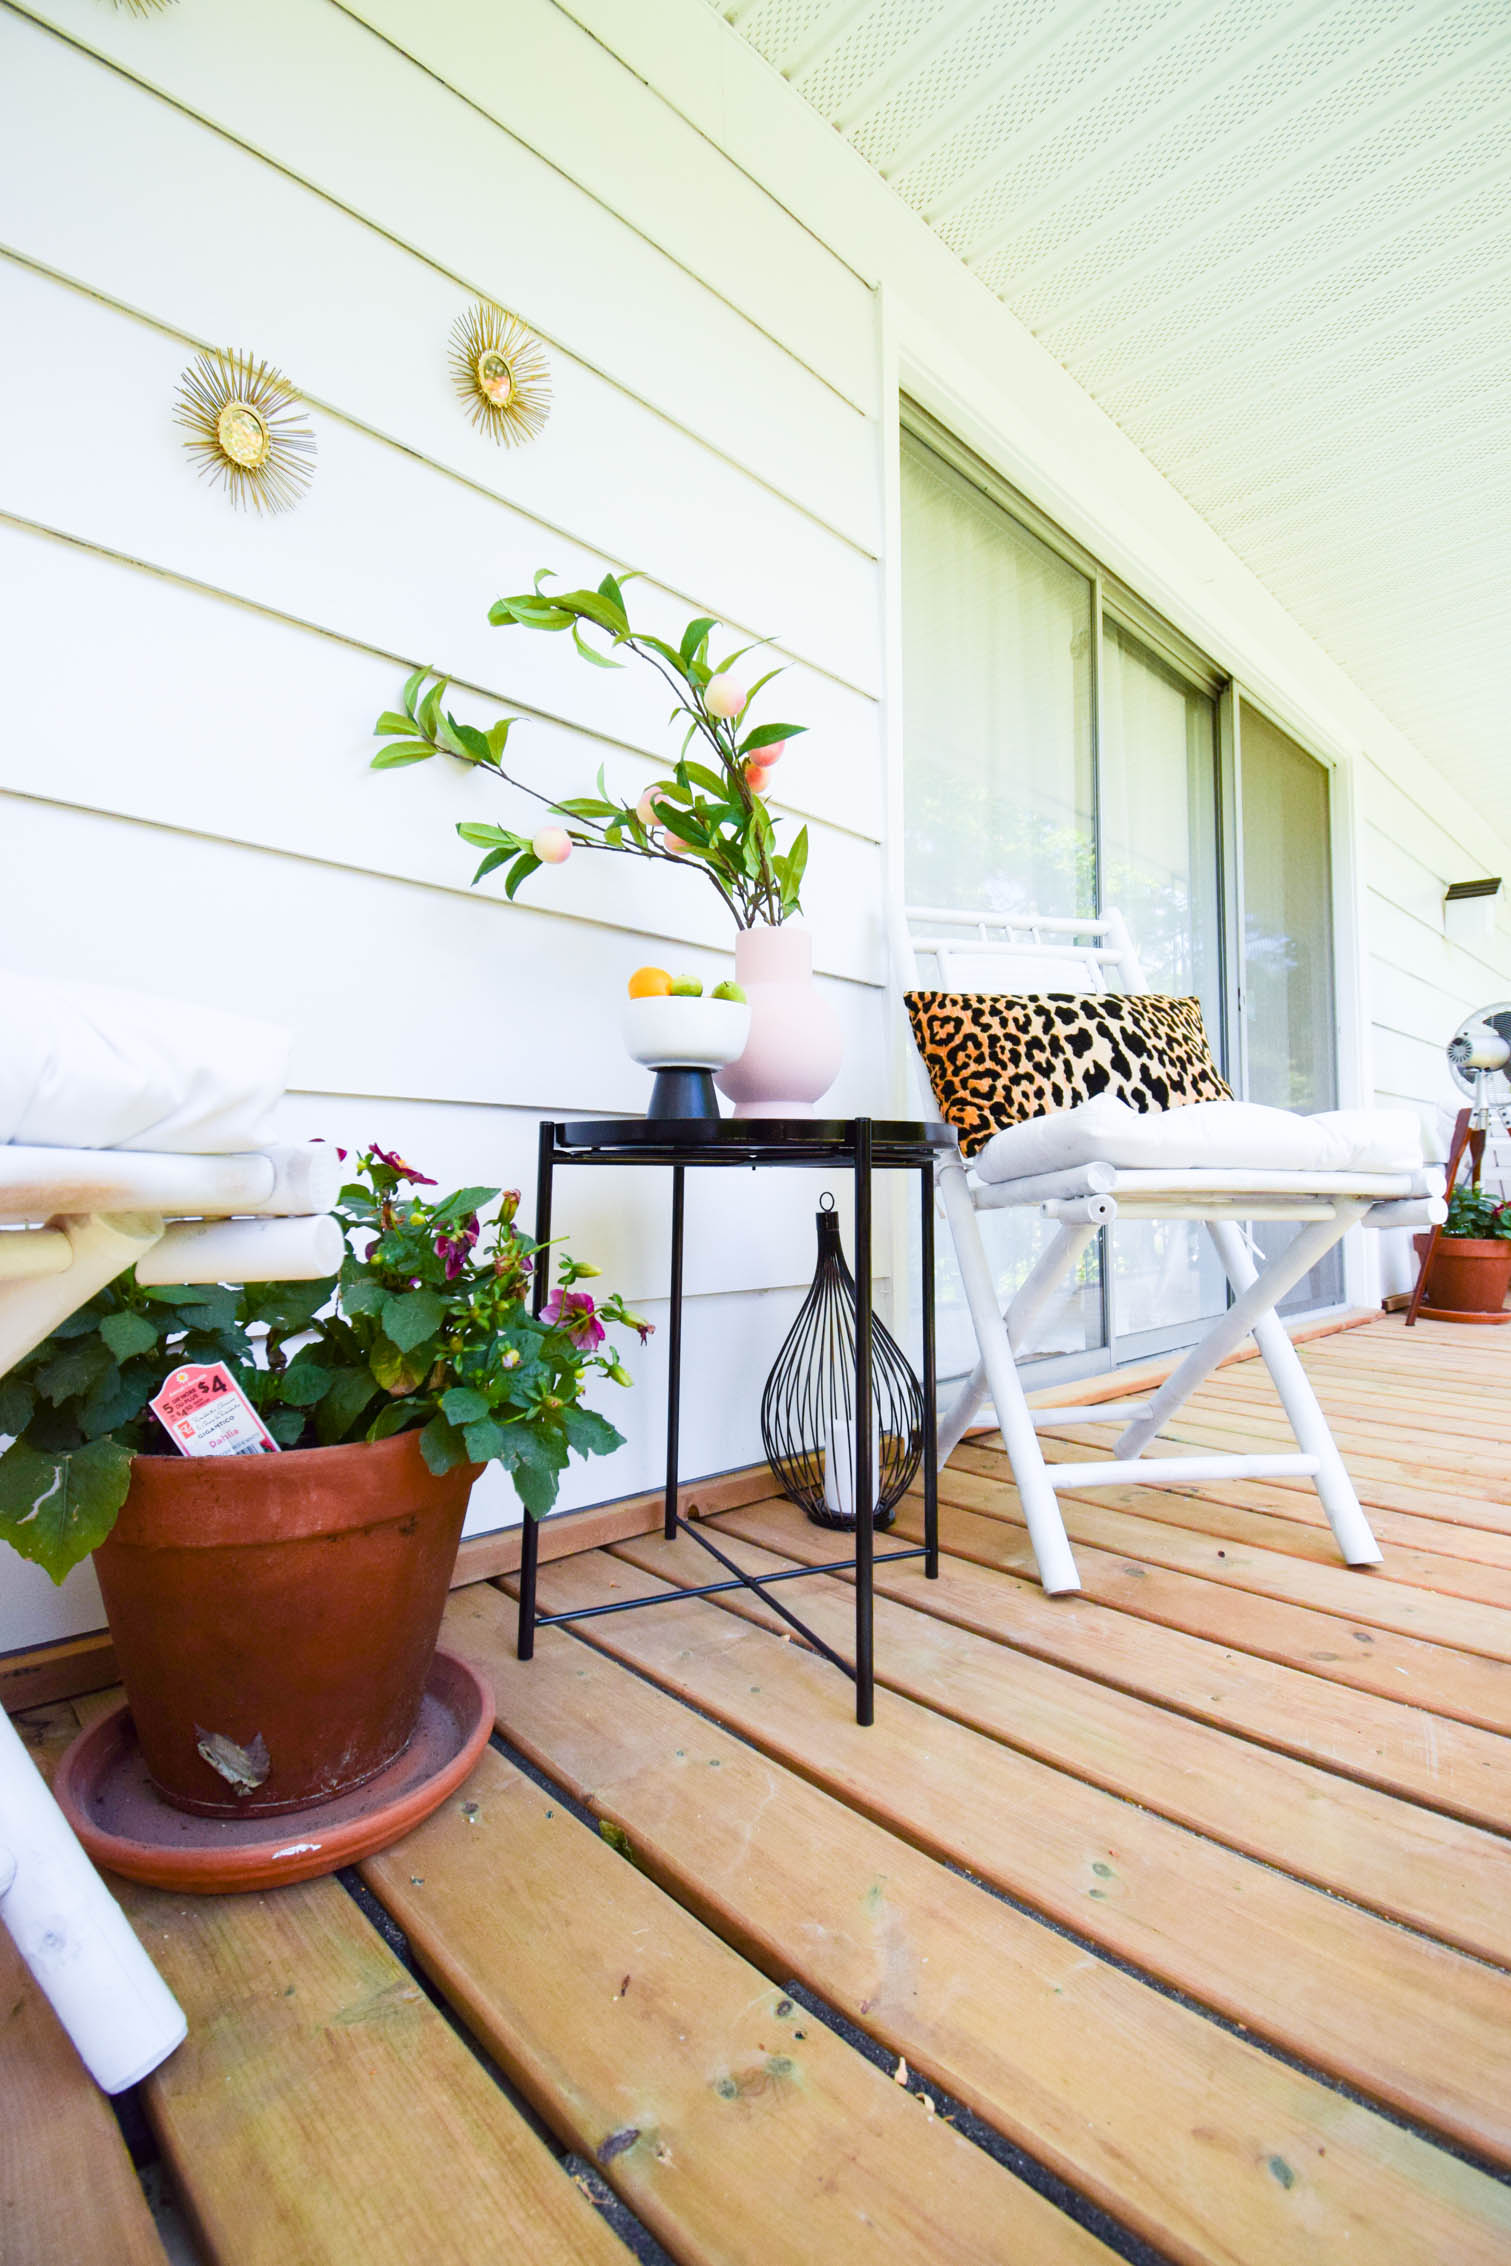 We completely redid our balcony deck using multydeck tiles, available at our local Home Depot. Create a floating deck on any surface with no permits!